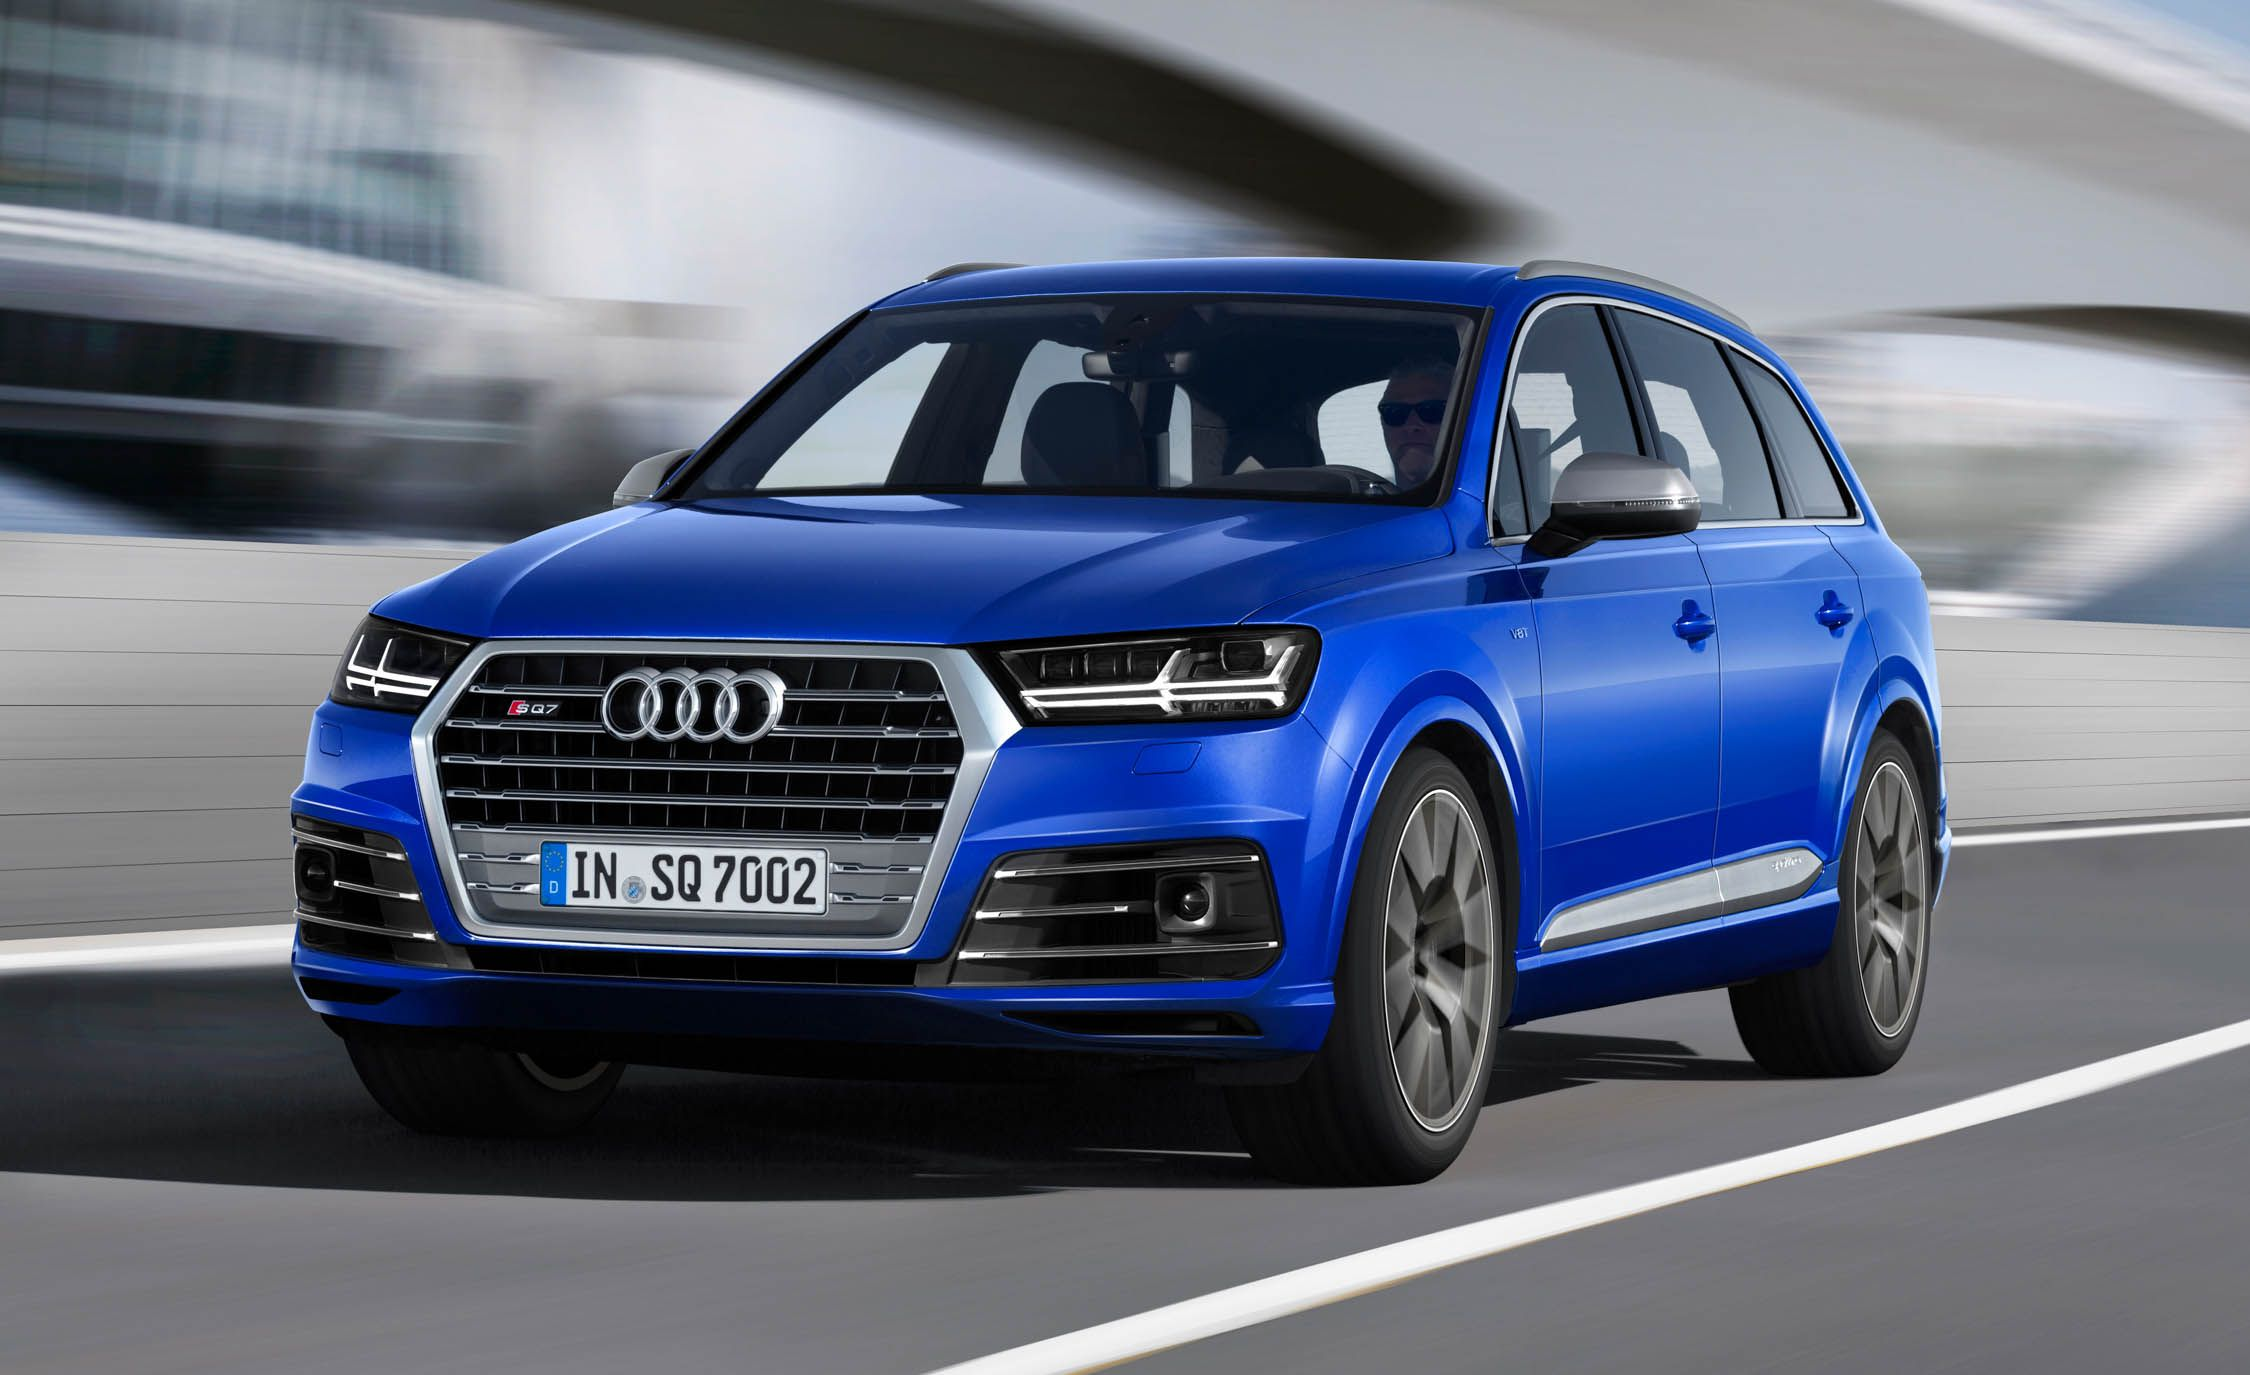 2018 Audi Sq7 Tdi 25 Cars Worth Waiting For Feature Car And